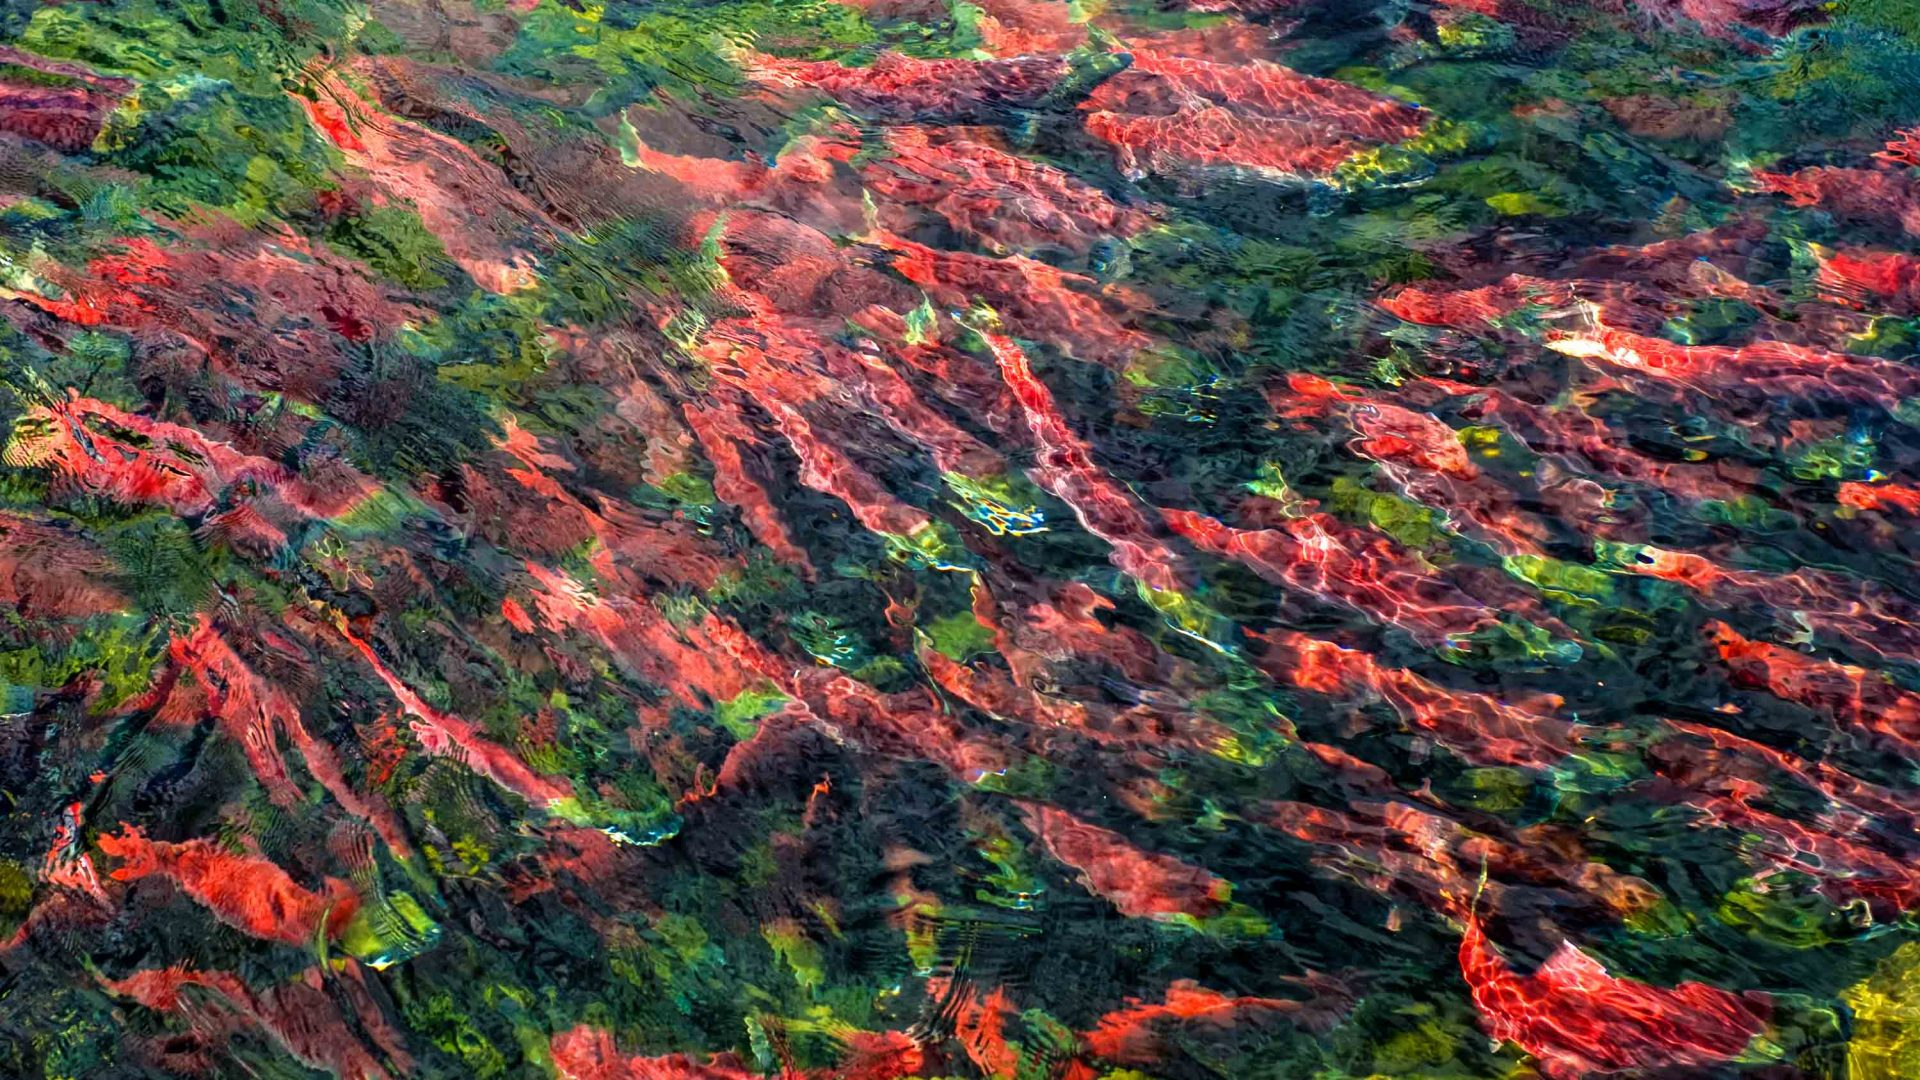 British Columbia's sockeye salmon run is bizarre, beautiful and bittersweet